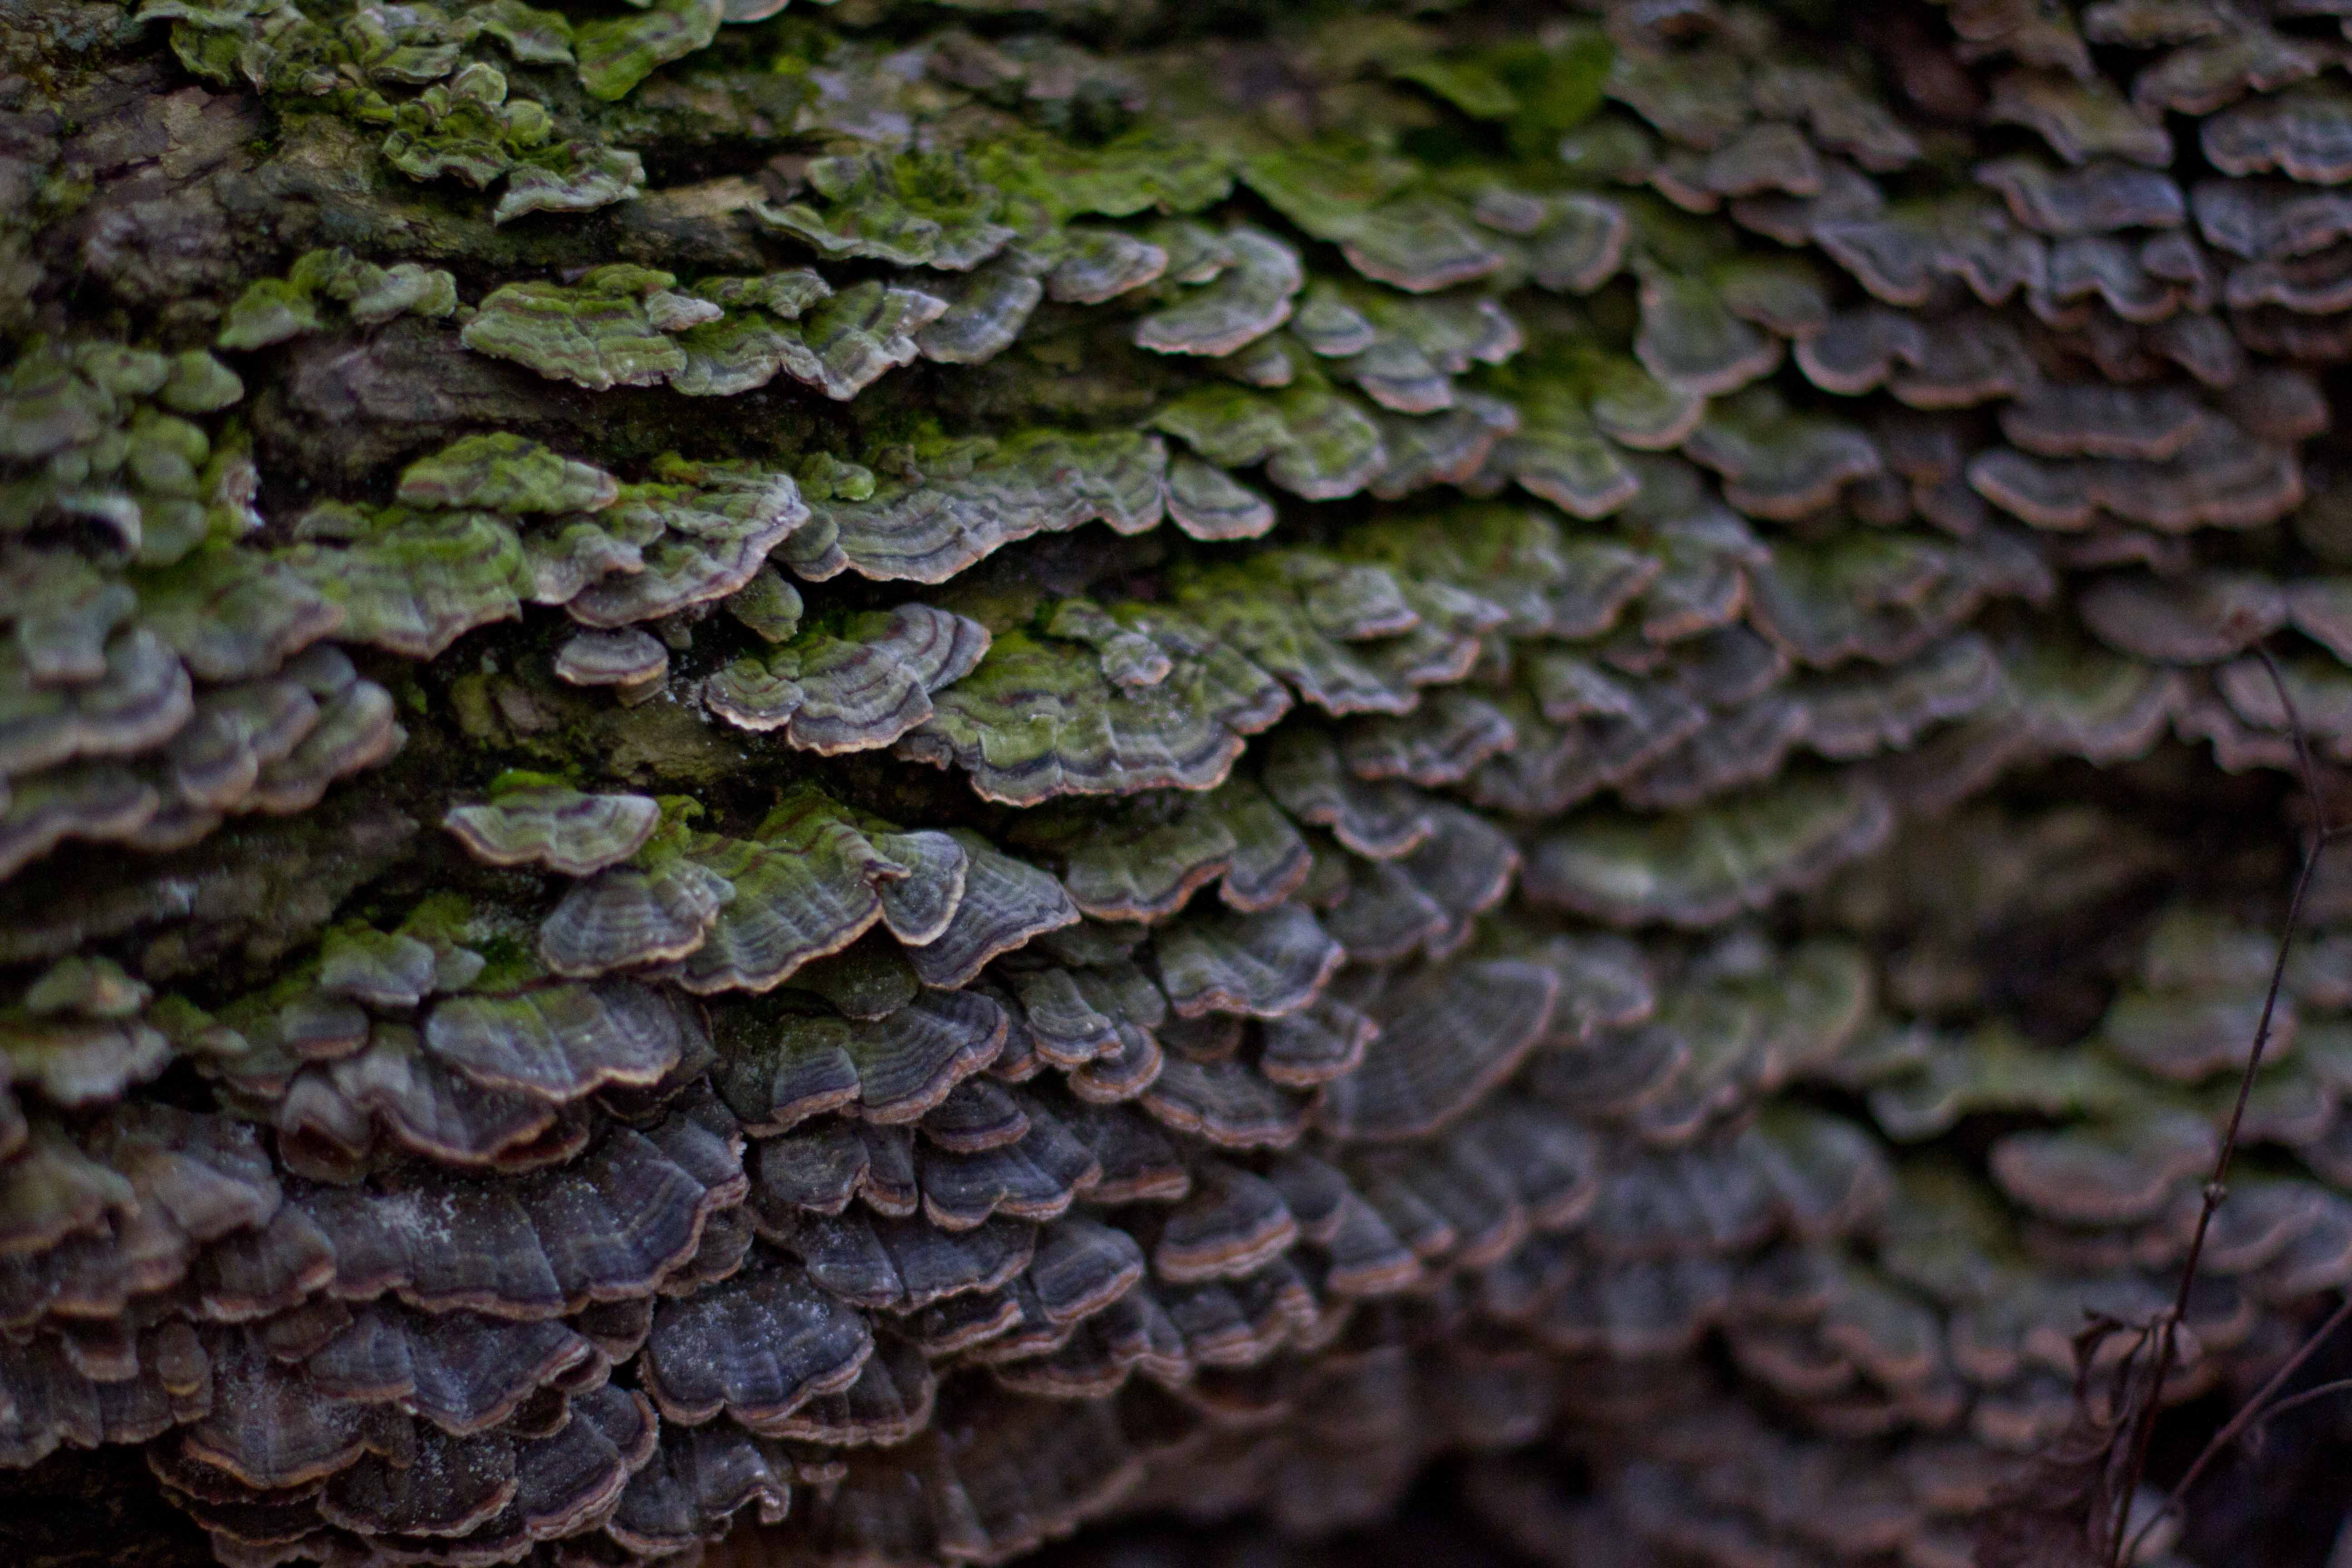 turkey tail fungus Trametes versicolor thatcher woods animalia project susan ask